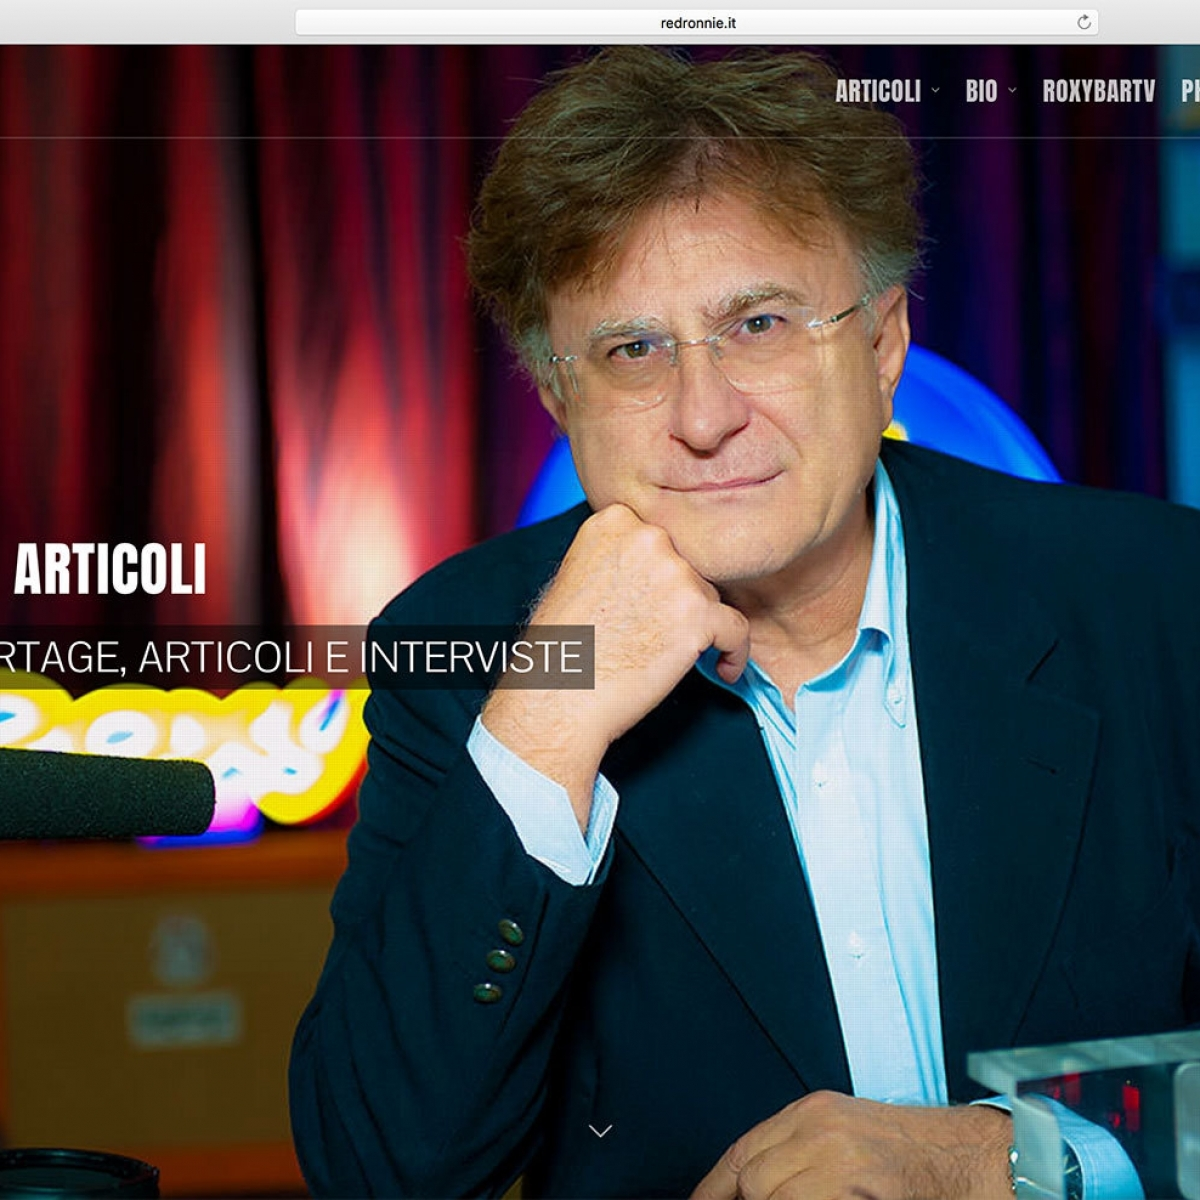 GIORNALISTA MUSICALE: RED RONNIE